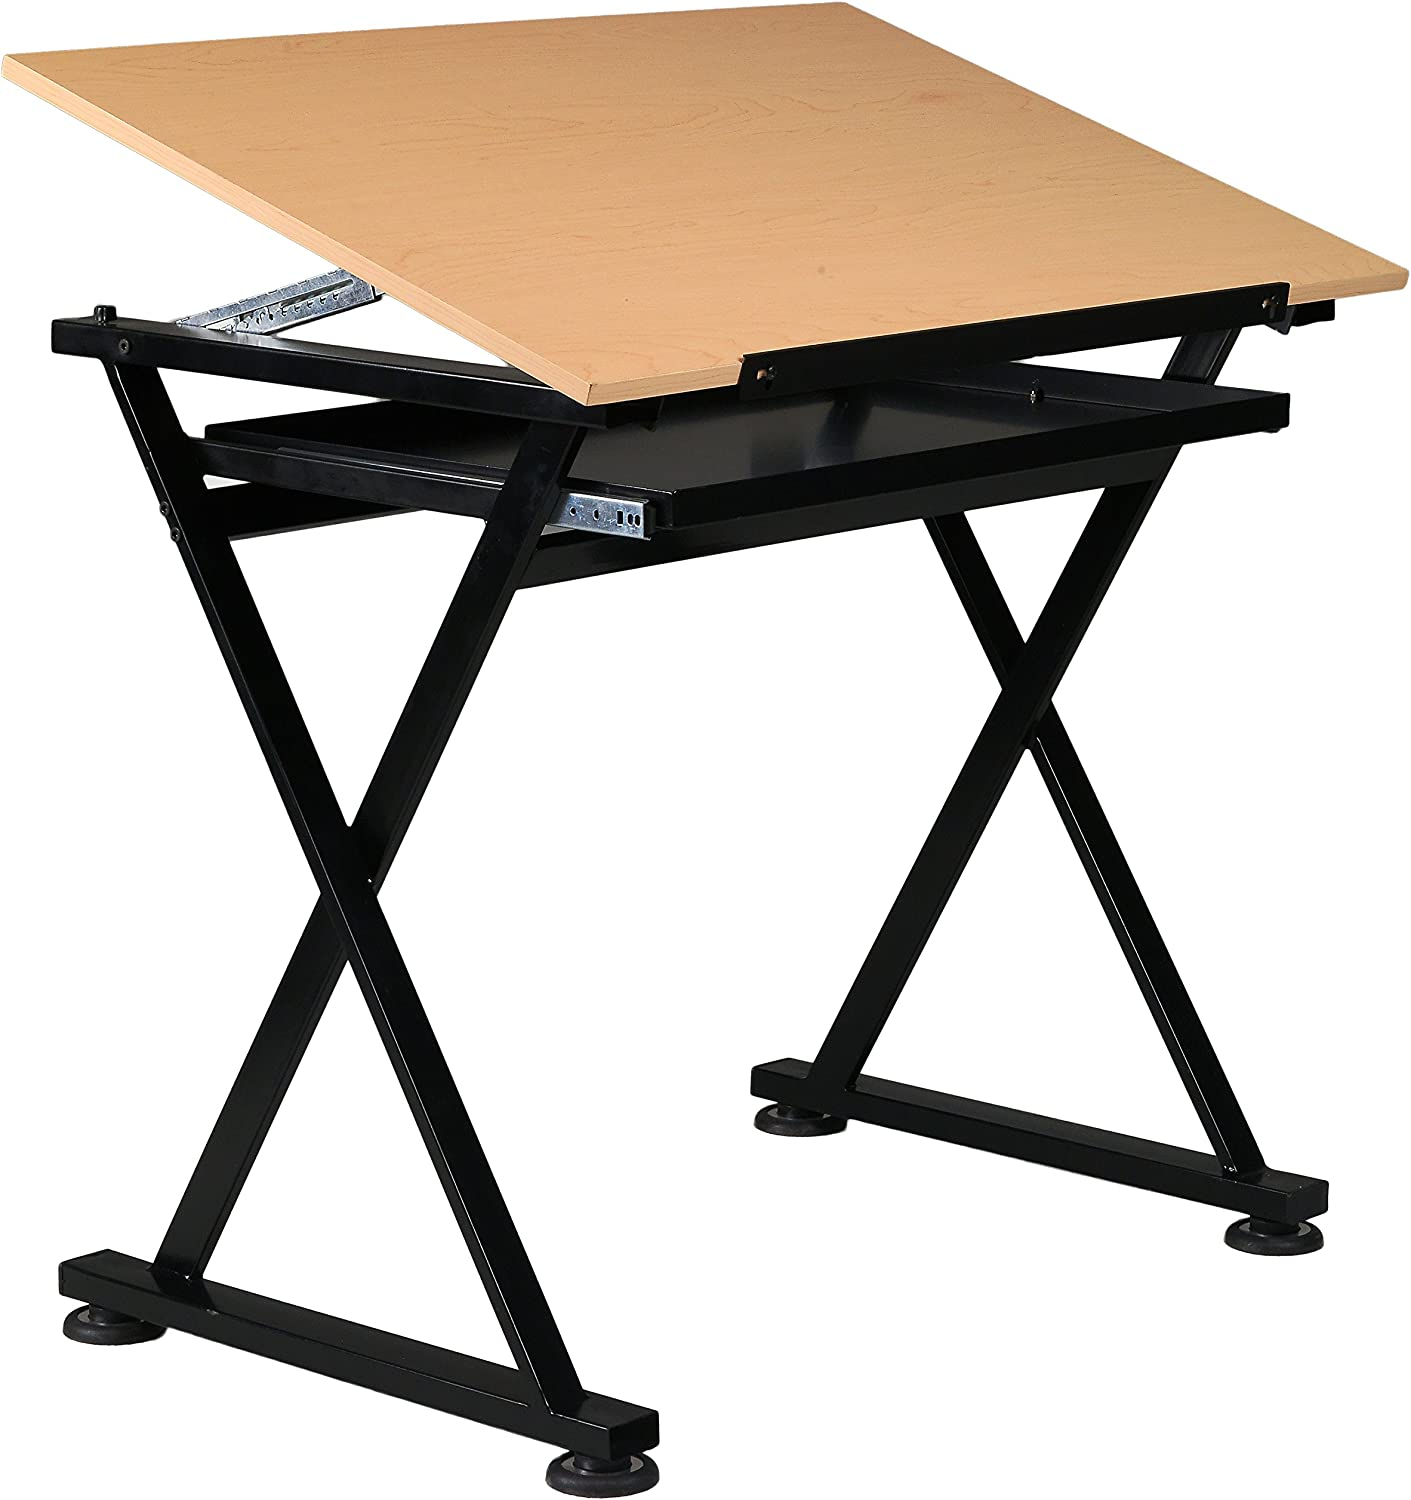 U-DS40B Martin Smart Drawing and Craft Table 1 Each Black with 35.5 W x 23.5 D Birchwood Melamine Top